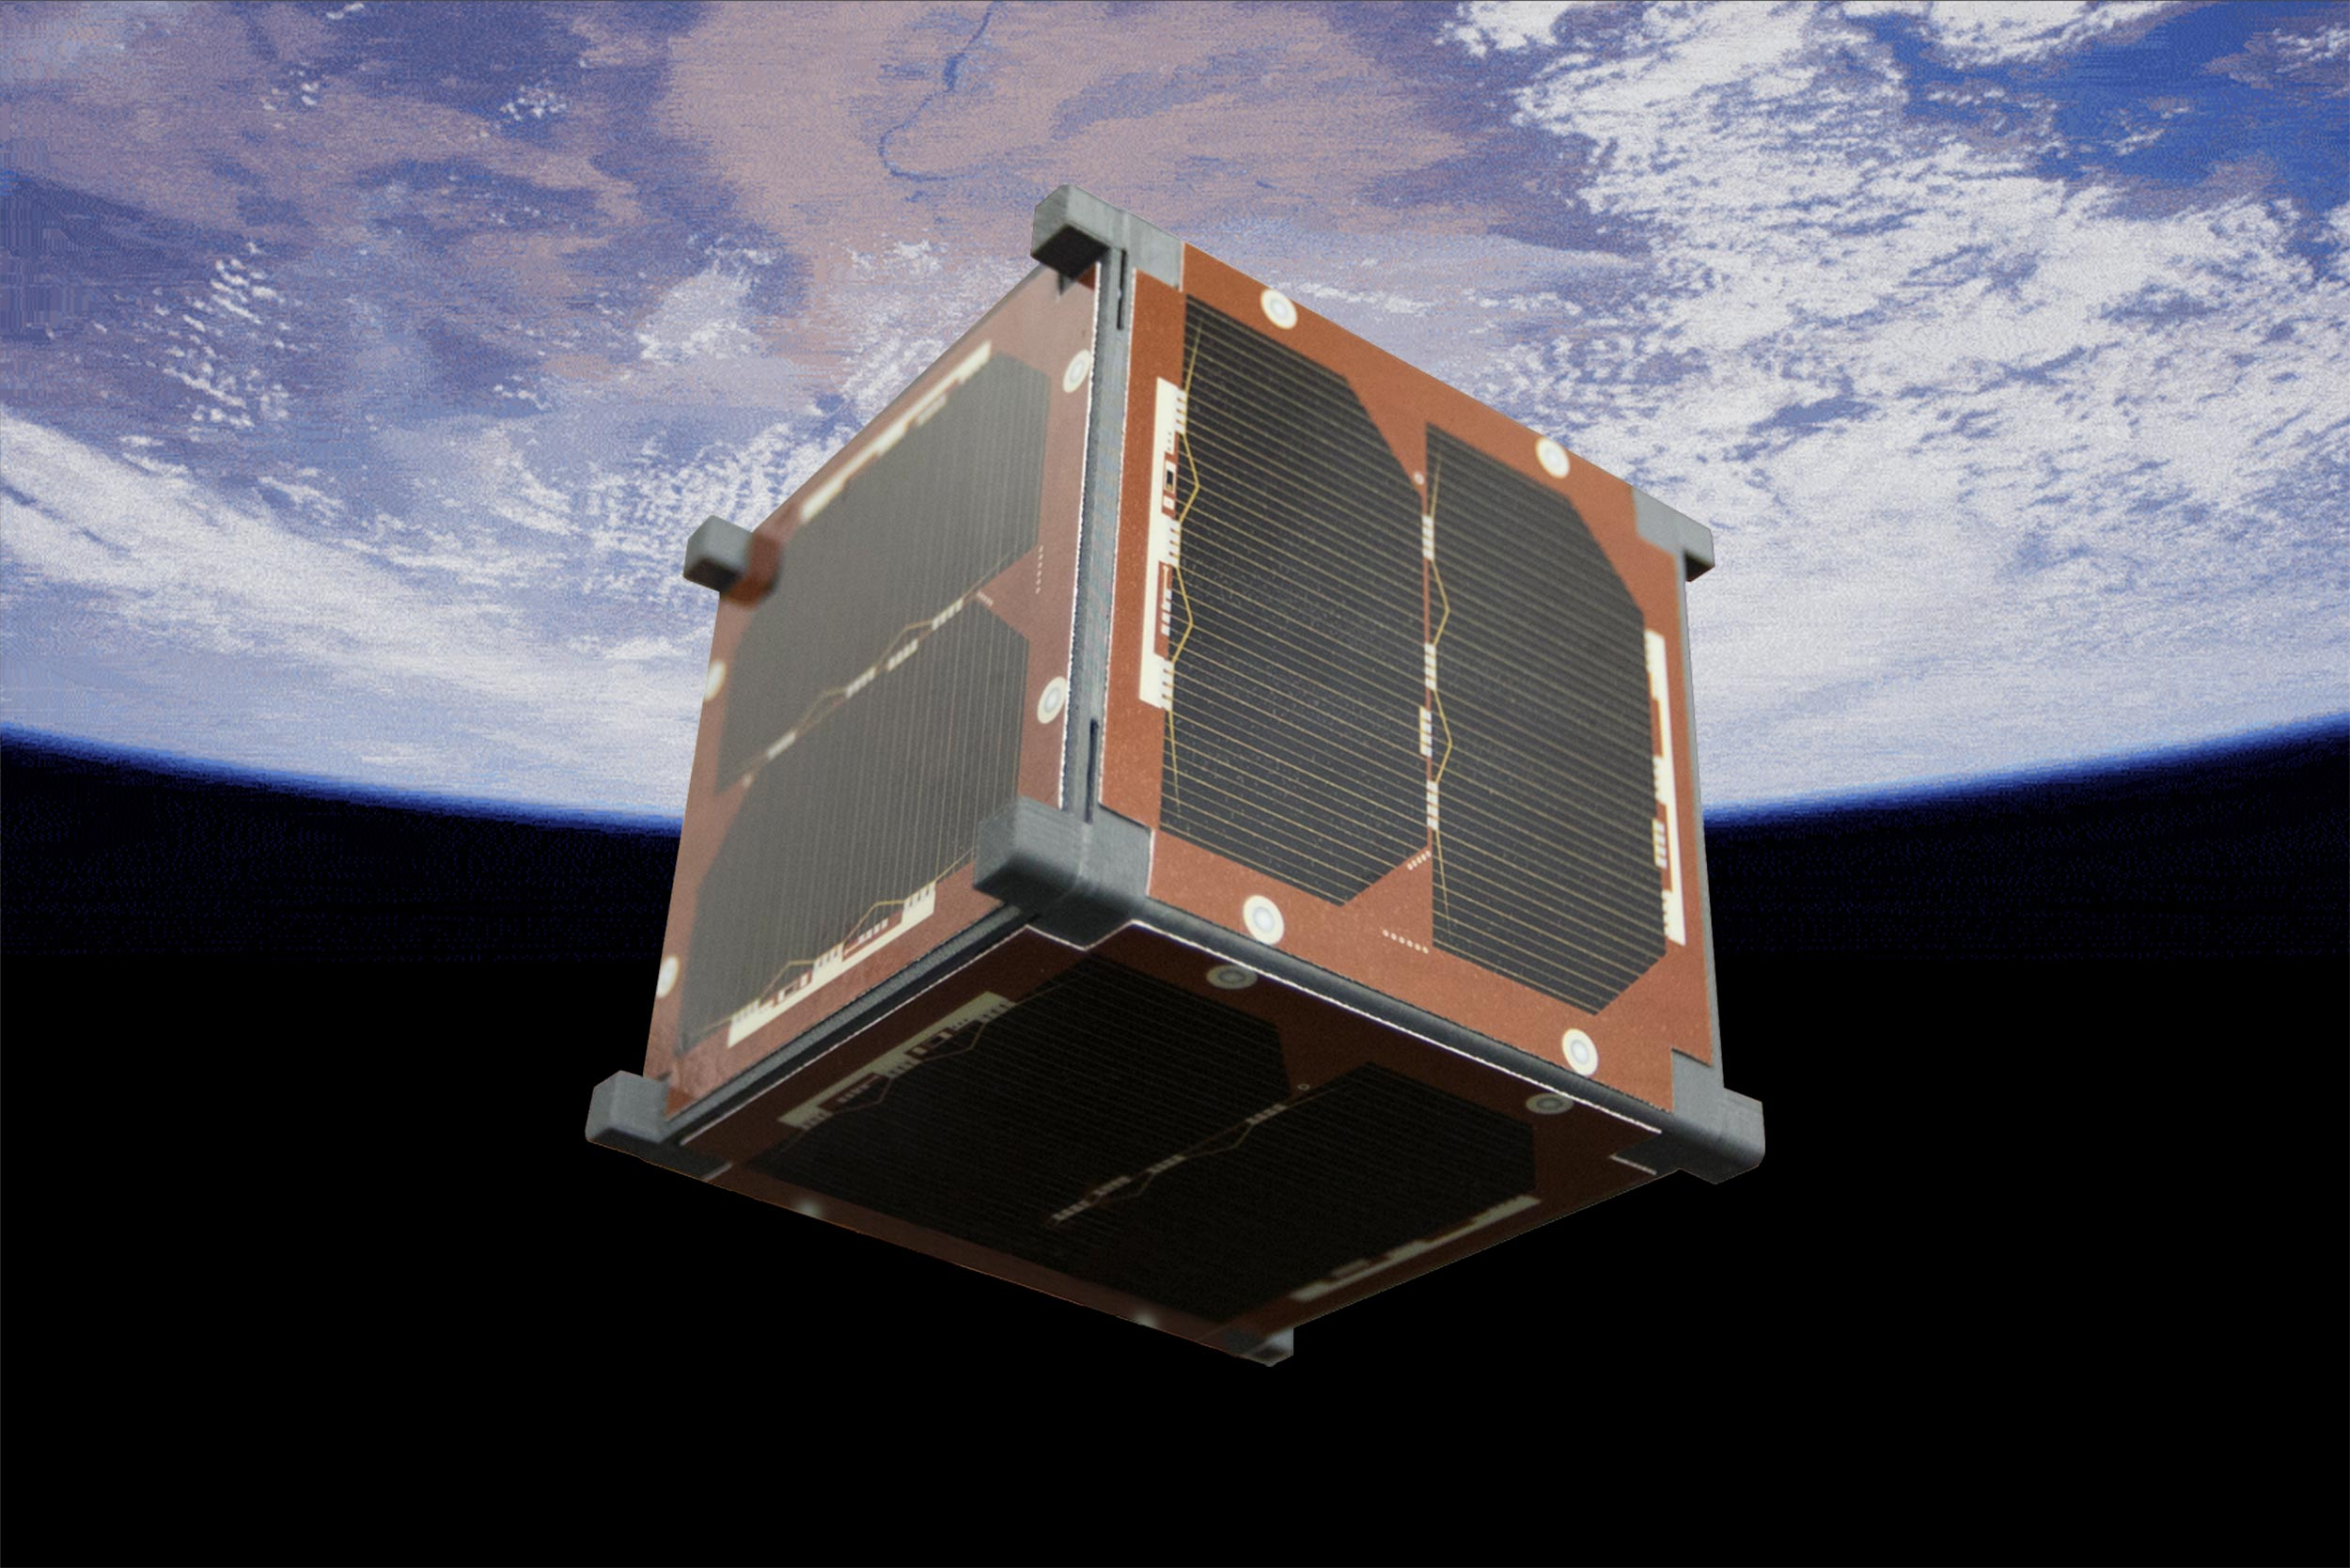 UVA 'CubeSat' Deployed; Students Seek Contact From Ground Station